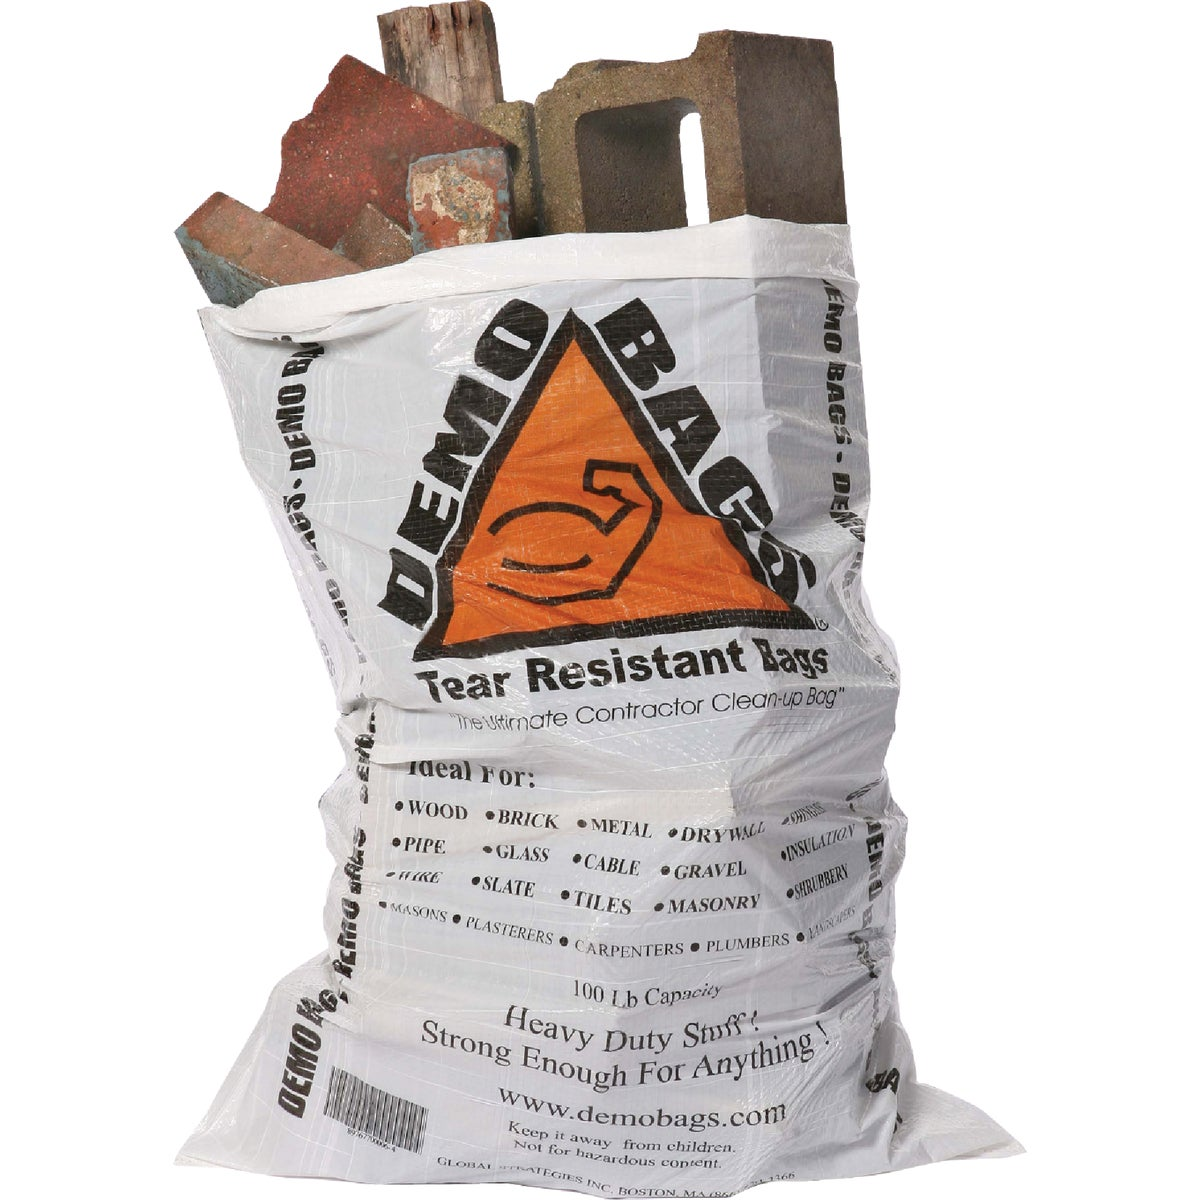 20 PACK 42GAL DEMO BAG - DB20 by Global Strategies